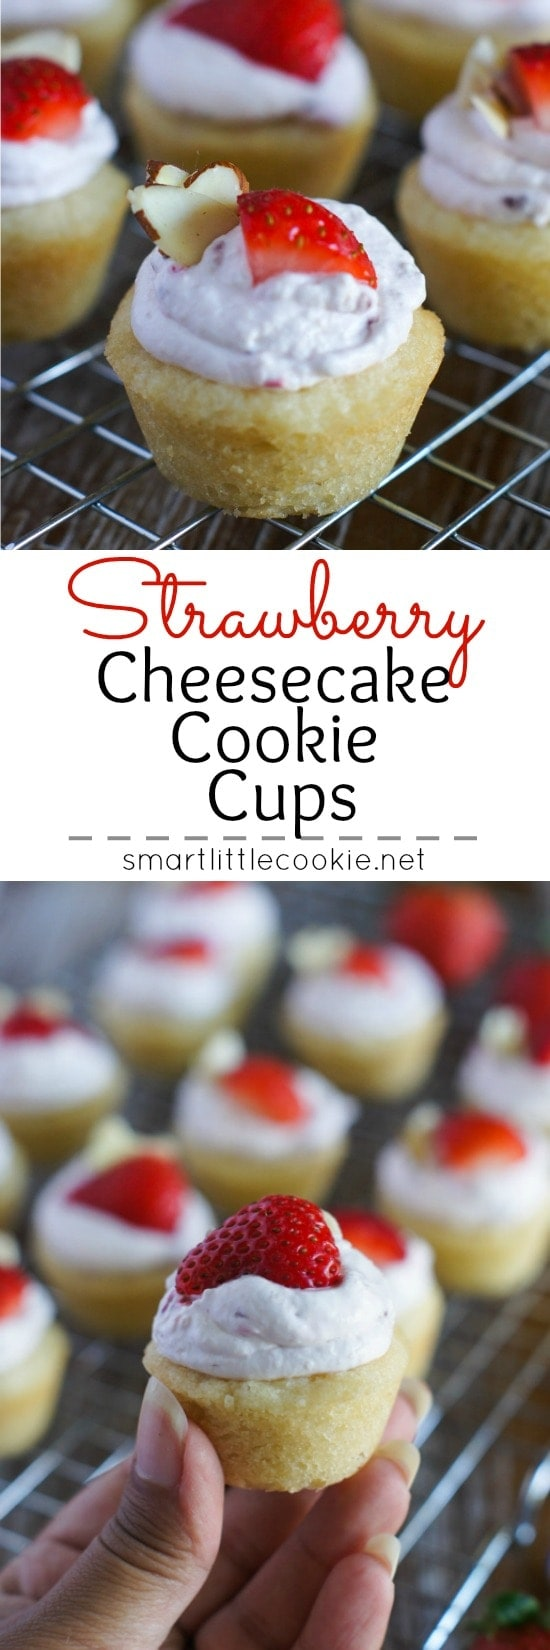 Pinterest graphic. Strawberry Cheesecake Cookie Cups with text overlay.